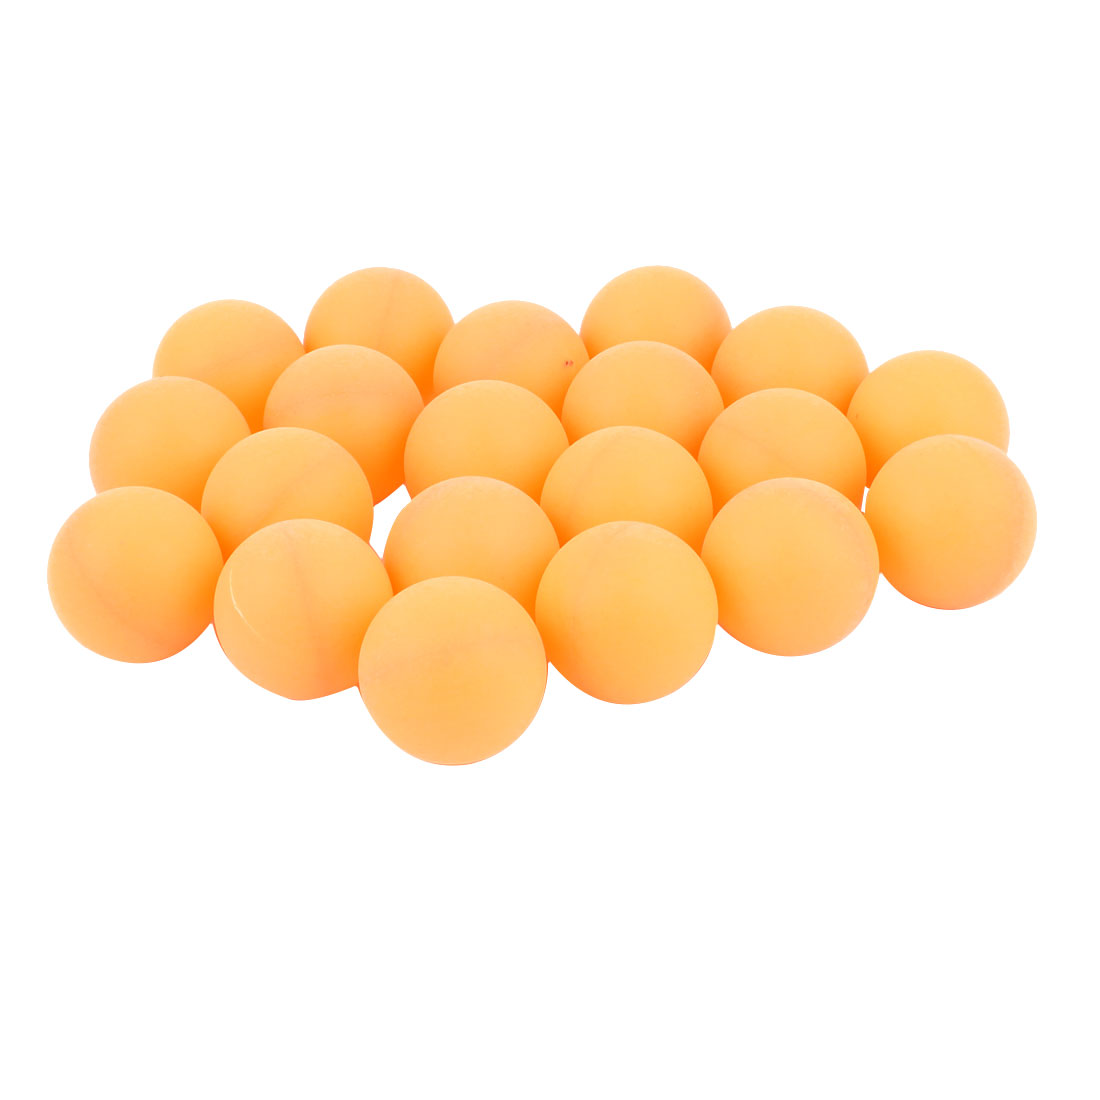 20Pcs Recreational Leisure Fitness Table Tennis Ping Pong Balls Yellow